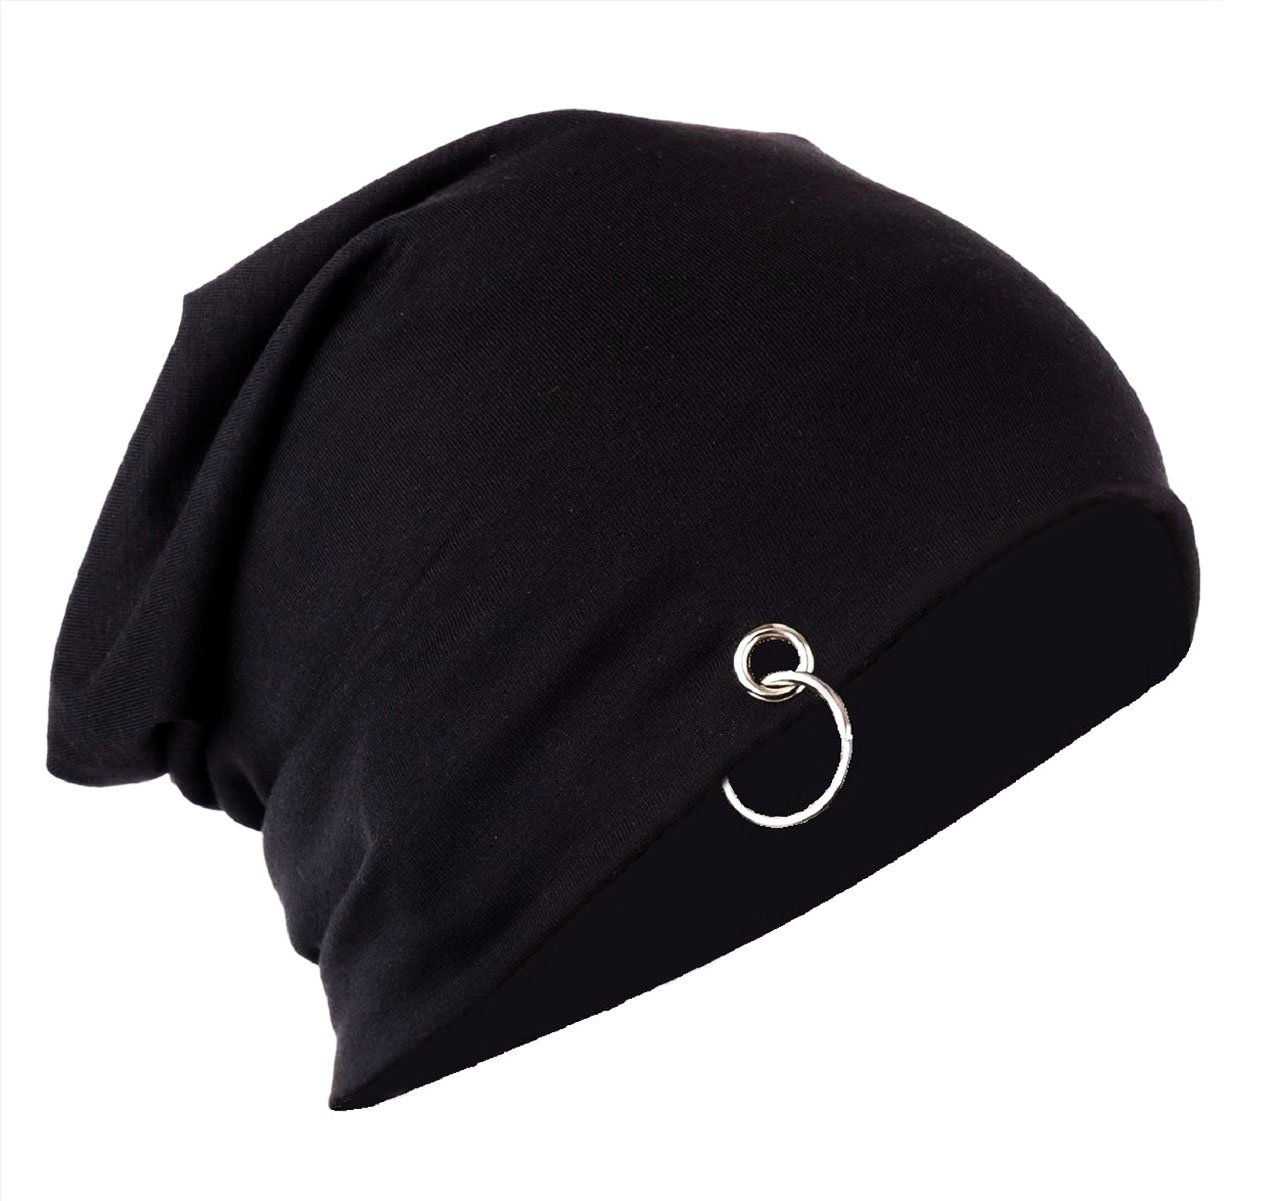 a7a903f3268 Buy Zainmark Beanie Skull Cap with Ring - Slouchy style Stretchable cotton  Free size for men and women (Black) Online at Low Prices in India -  Amazon.in